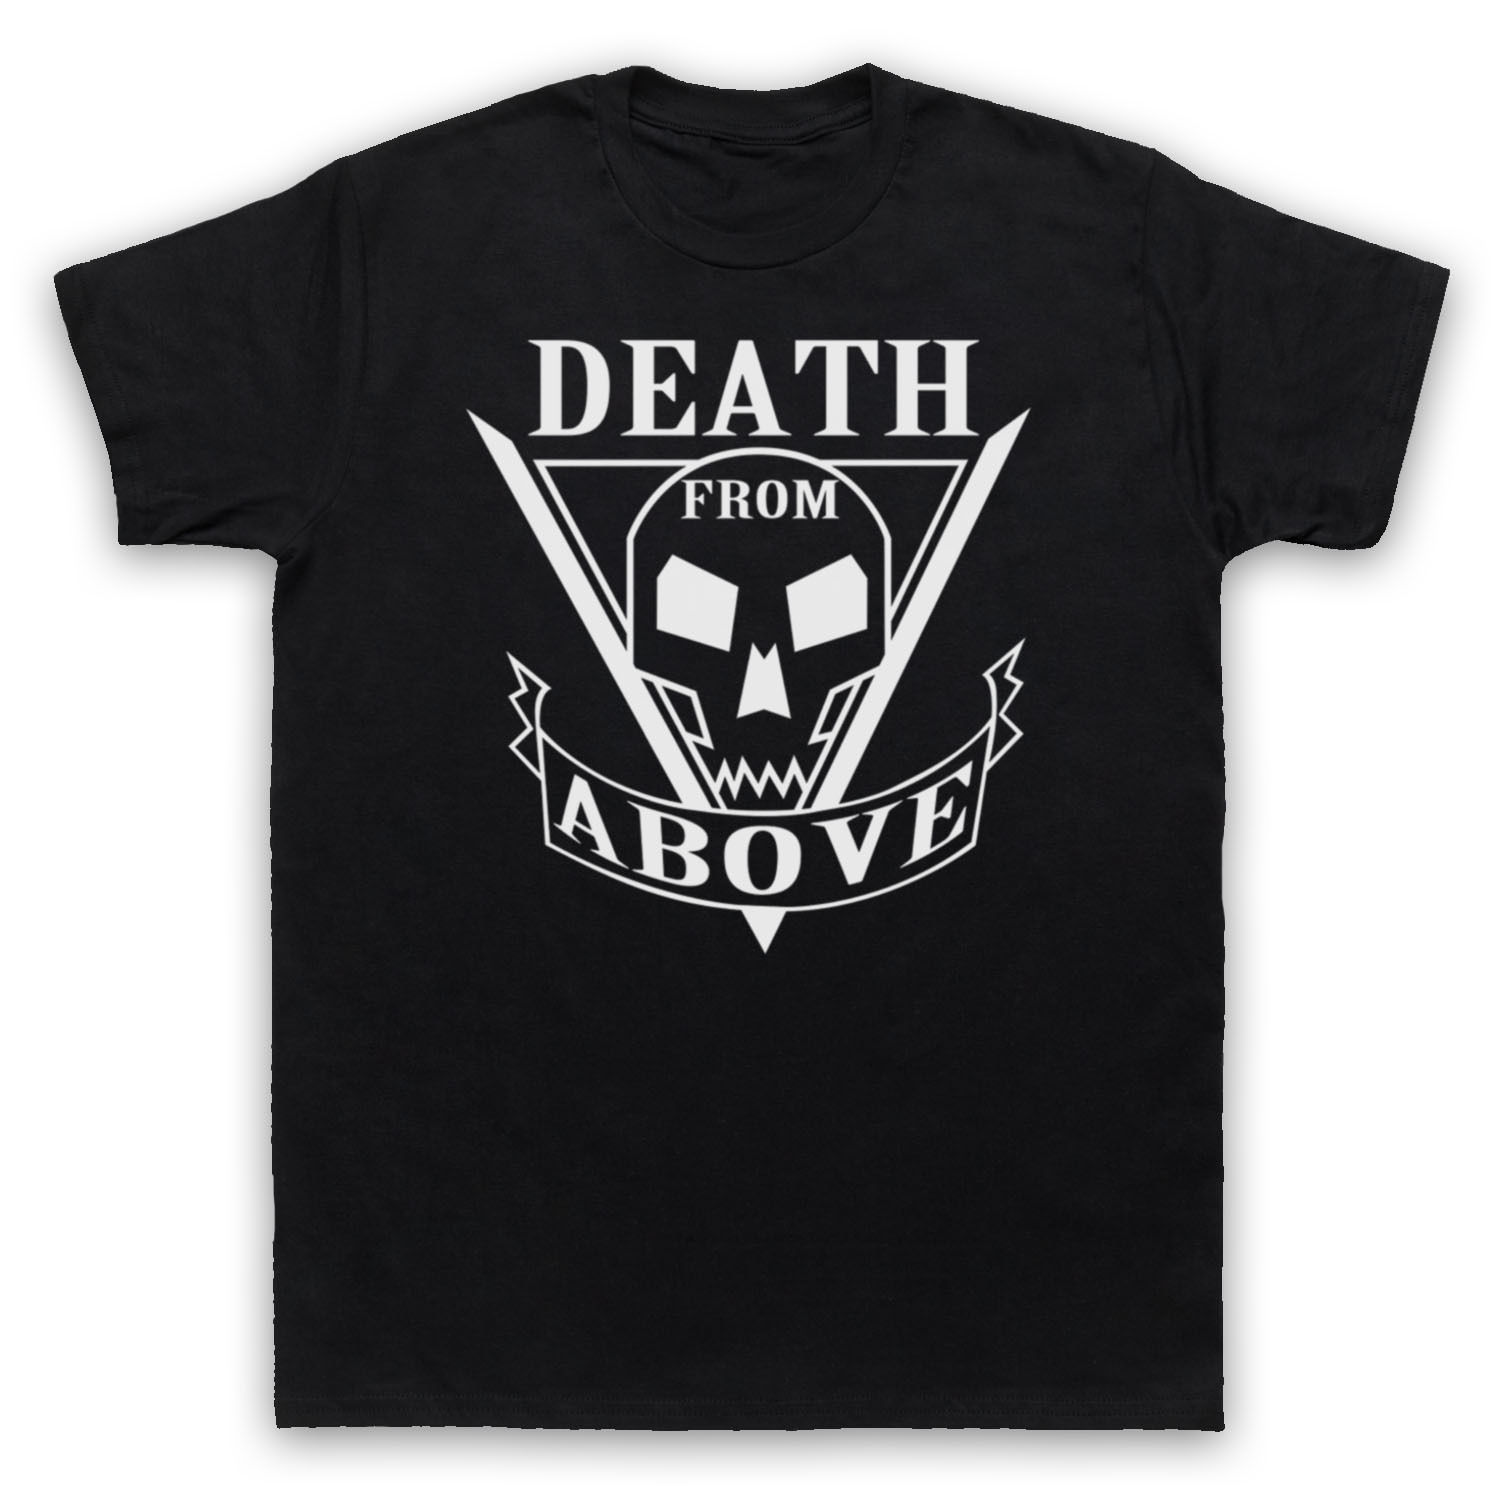 STARSHIP TROOPERS UNOFFICIAL DEATH FROM ABOVE T-SHIRT MENS LADIES KIDS SIZES COL